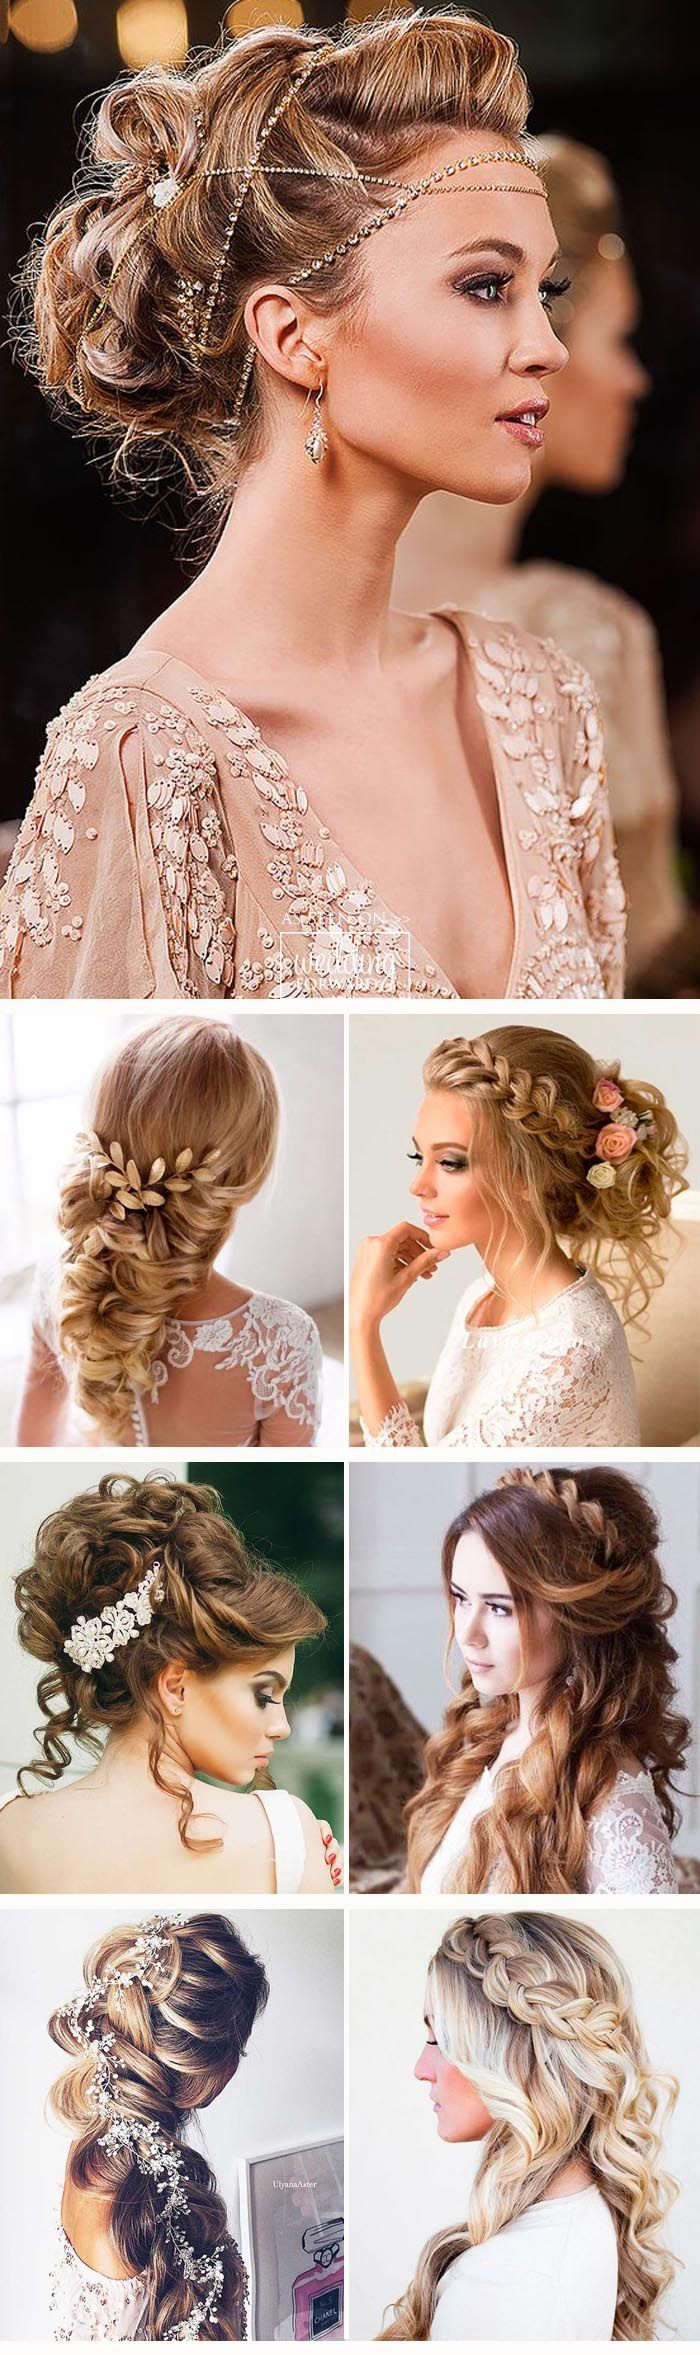 24 Greek Wedding Hairstyles For The Divine Brides ❤ Greek wedding hairstyles a...